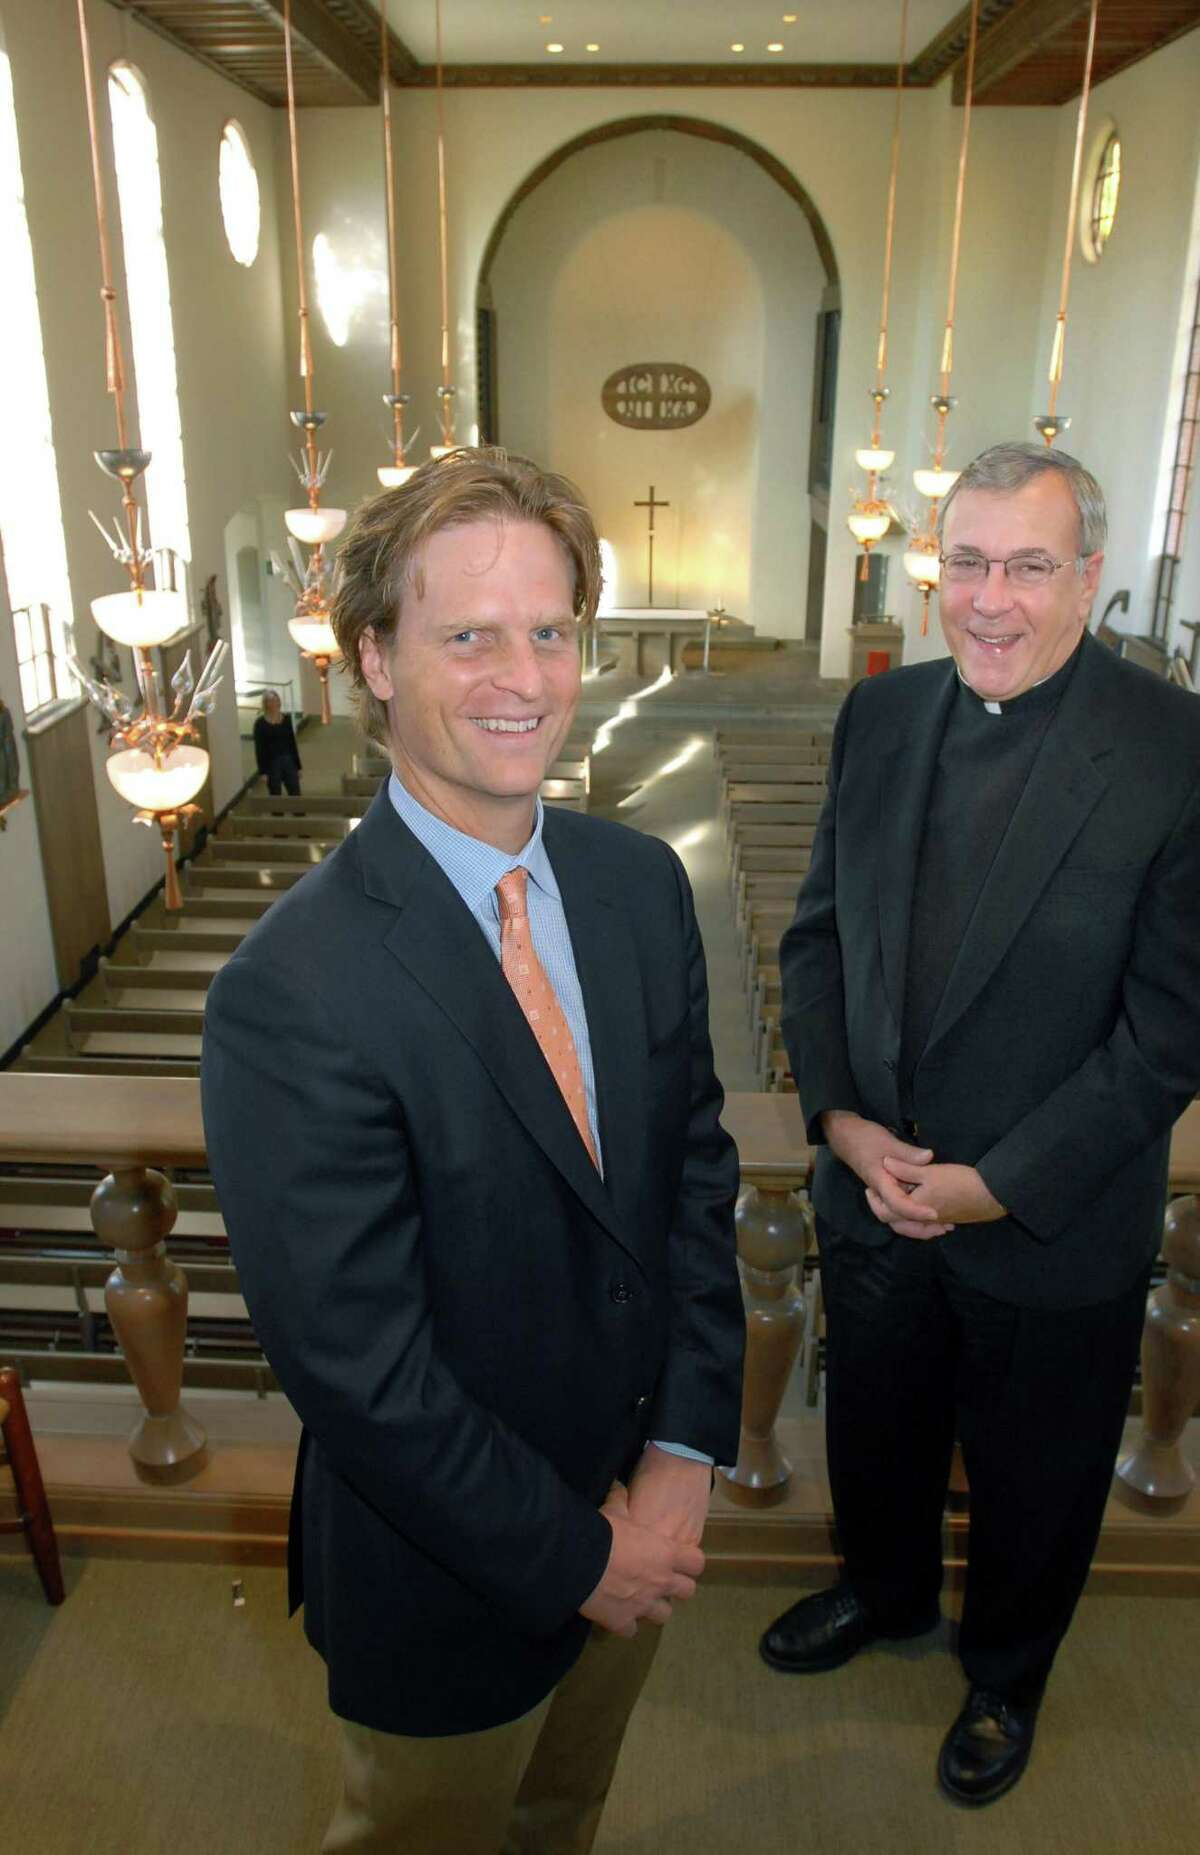 The Rev. Robert Beloin, right, with architect George Knight, who oversaw the renovation of Saint Thomas More Chapel at Yale.